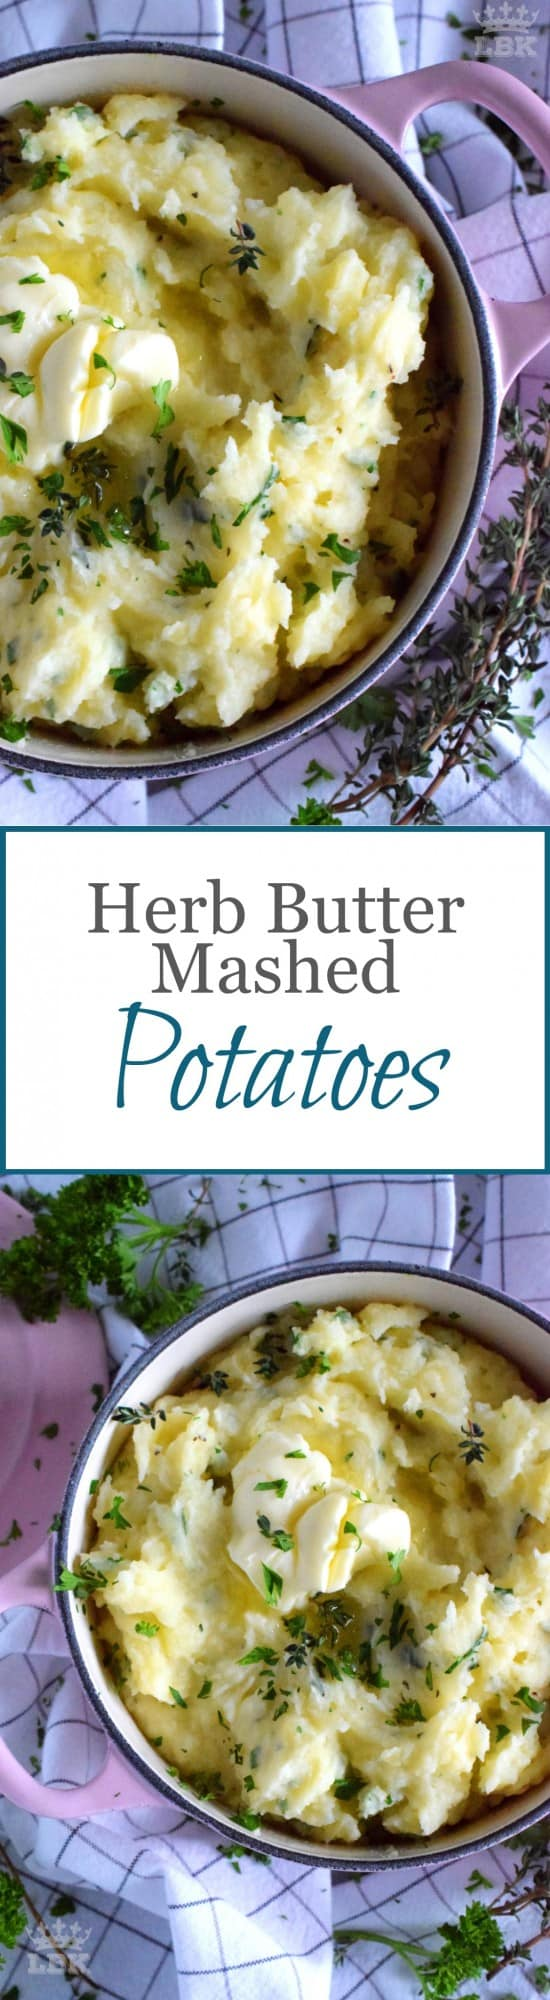 Herb Butter Mashed Potatoes